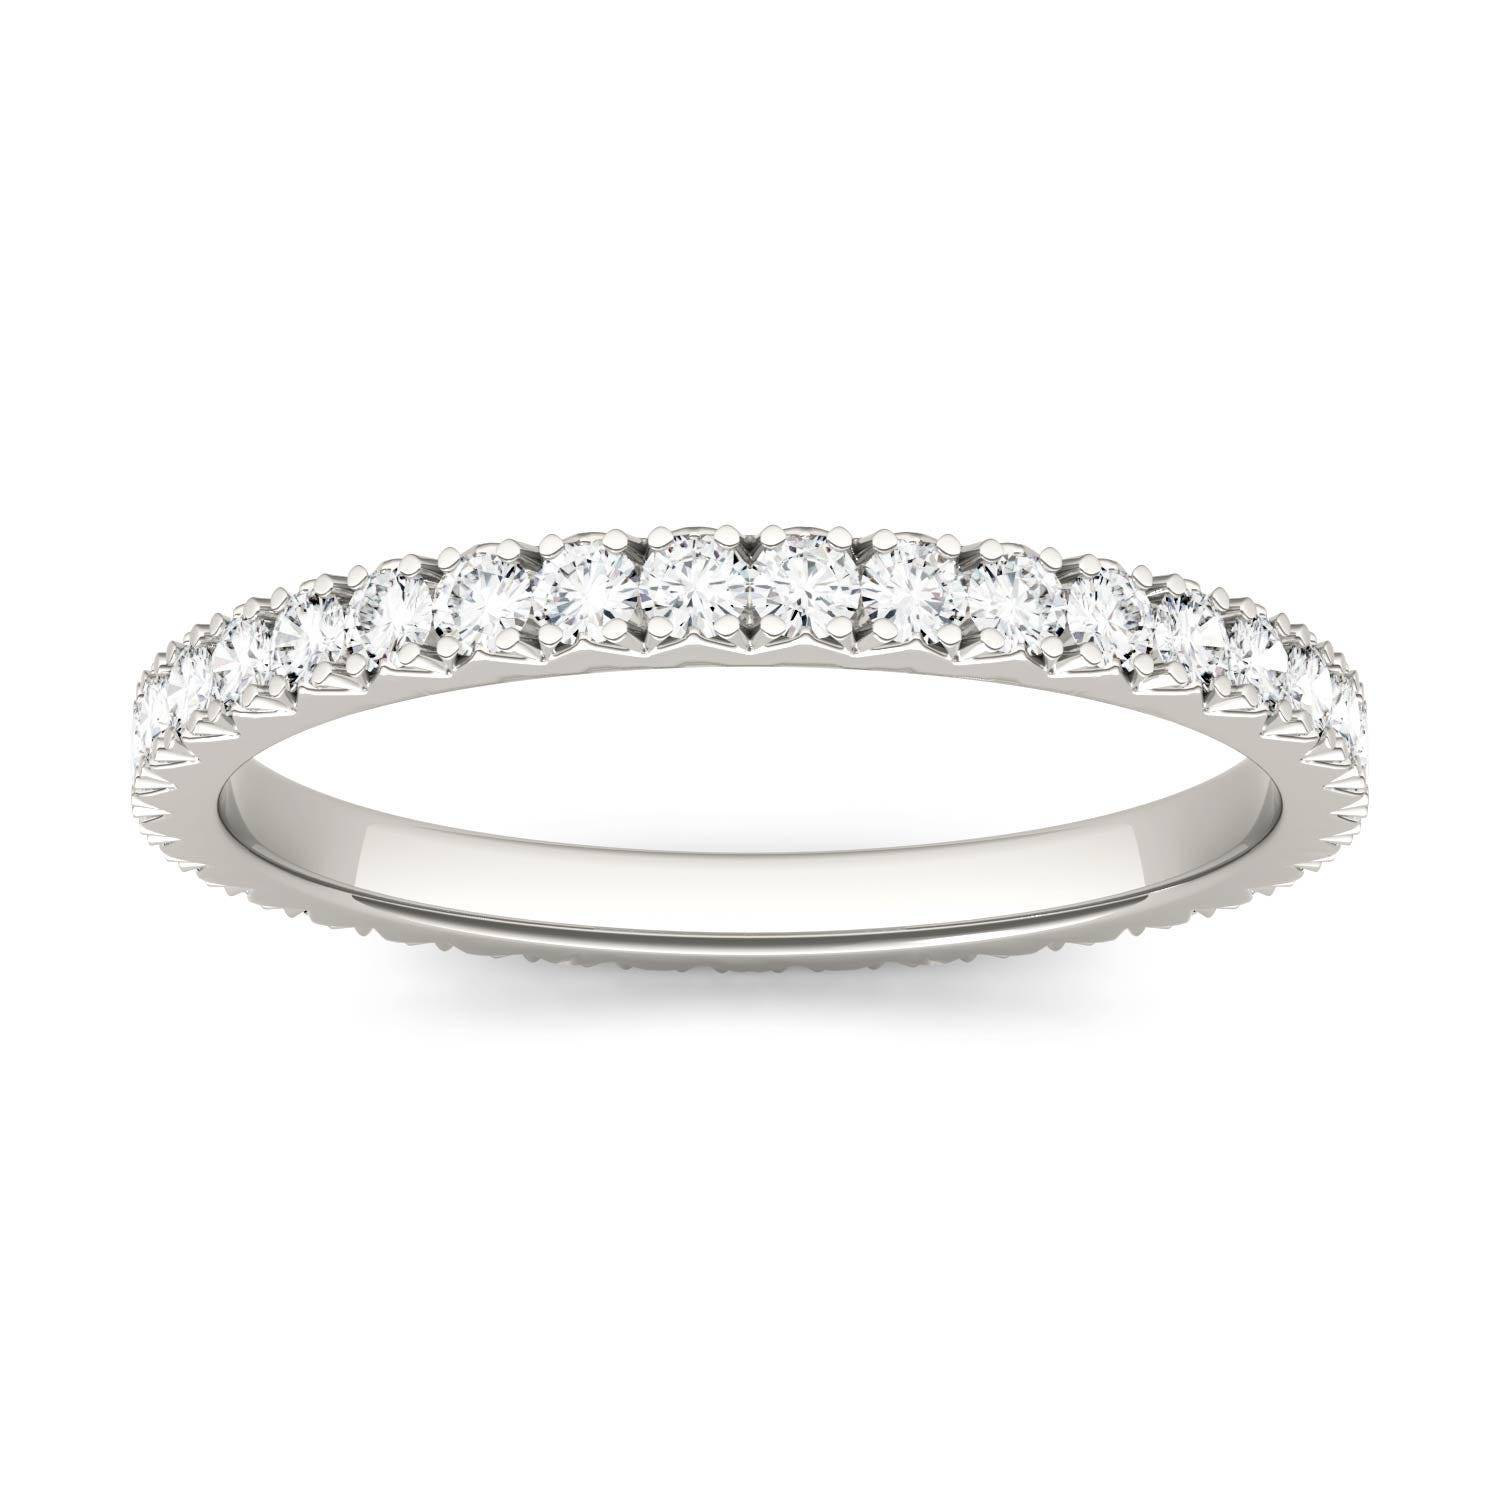 Charles & Colvard Eternity Prong Set Band Wedding Ring in 14K White Gold, Size: 7.5, 0.50CTW Round Forever One Moissanite Accent Stones Charles & Colvard  - White Gold - Size: 7.5